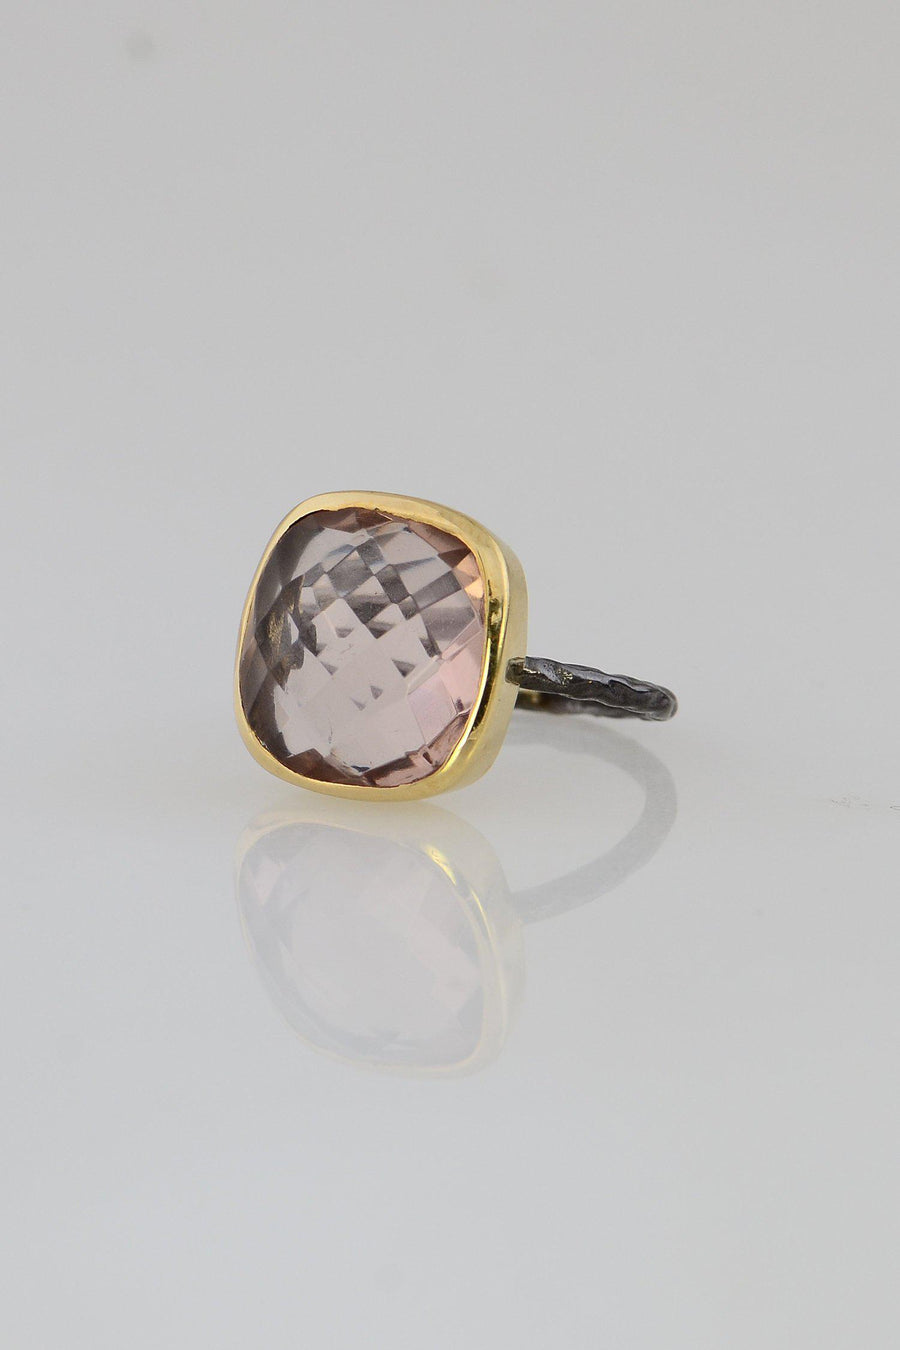 Morganite ring, Blush Gemstone ring, Statement ring, Oxidized Silver ring, Gemstone ring, Modern ring, Gift for her, Simple gemstone ring